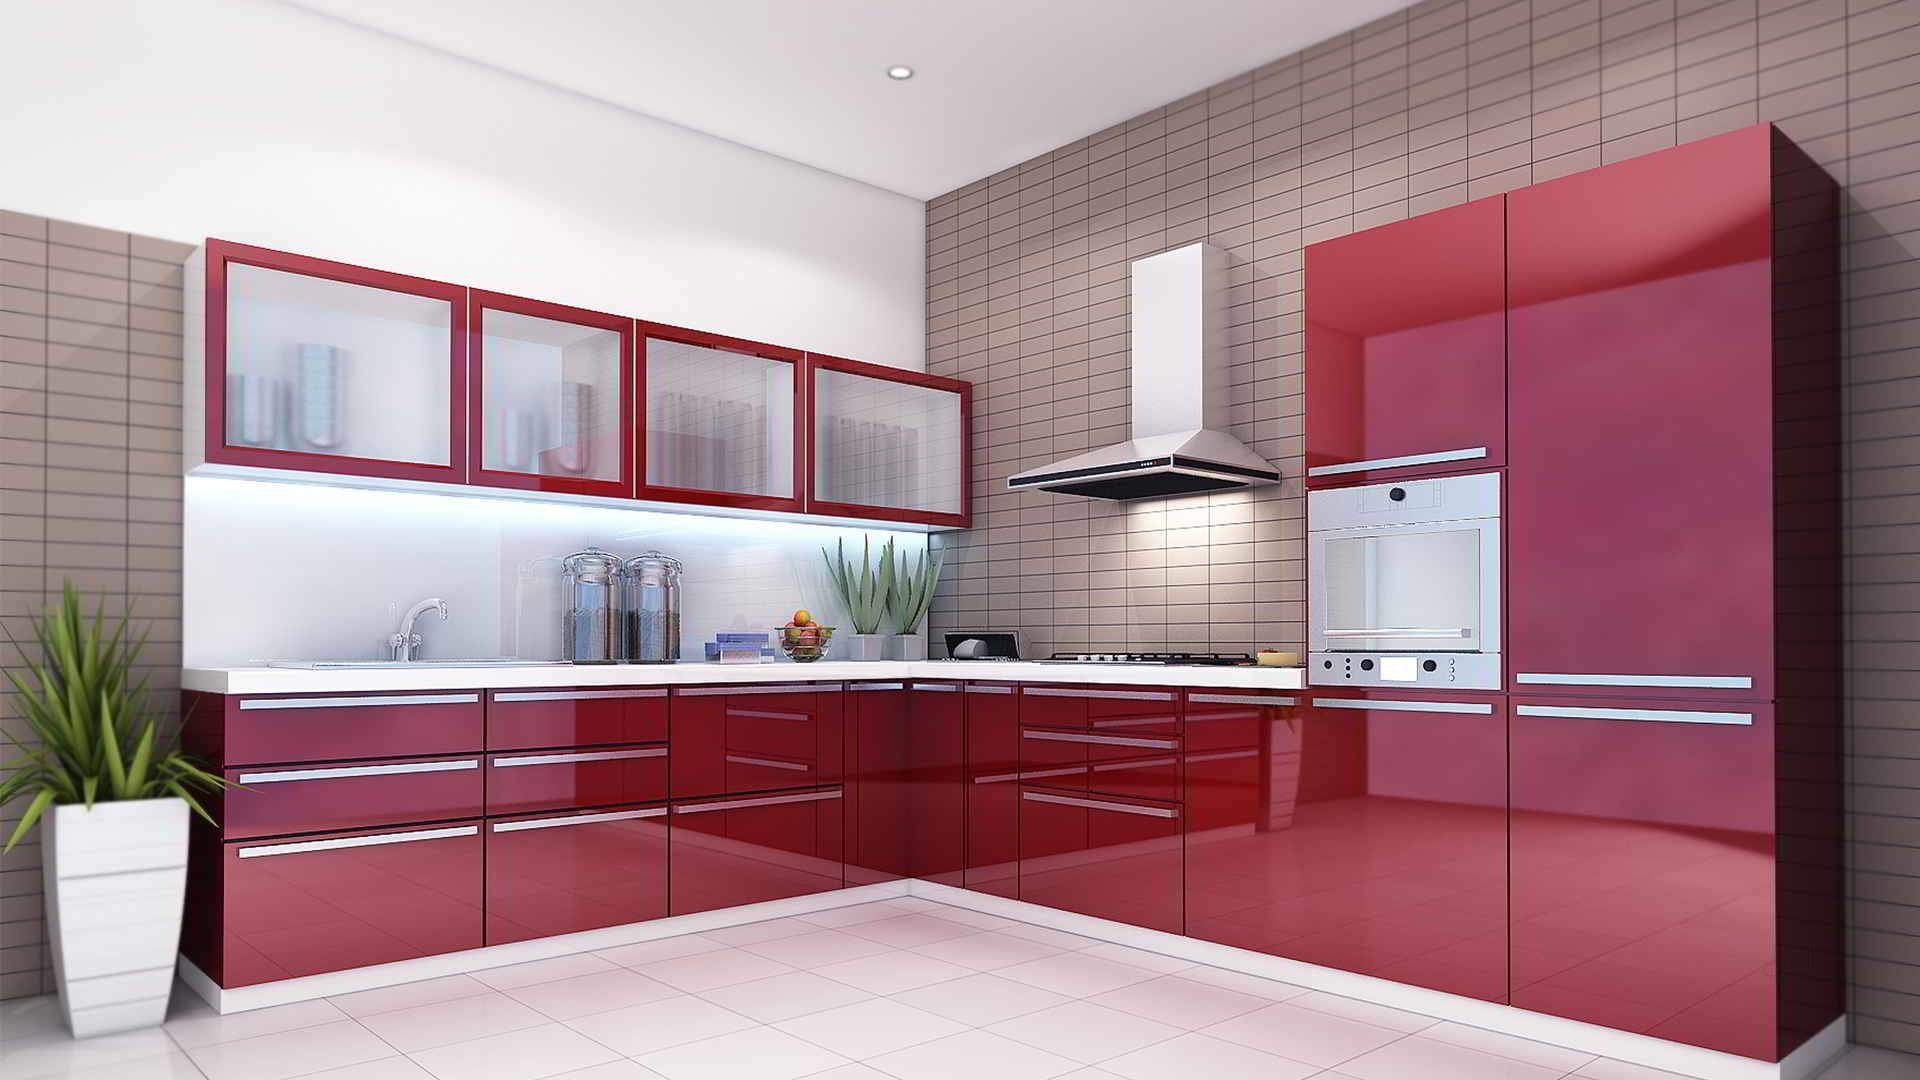 Furnisys Office Furniture And Modular Kitchens, Manewada Road - Furnisys  Office Furniture & Modular Kitchens - Furniture Dealers in Nagpur - Justdial